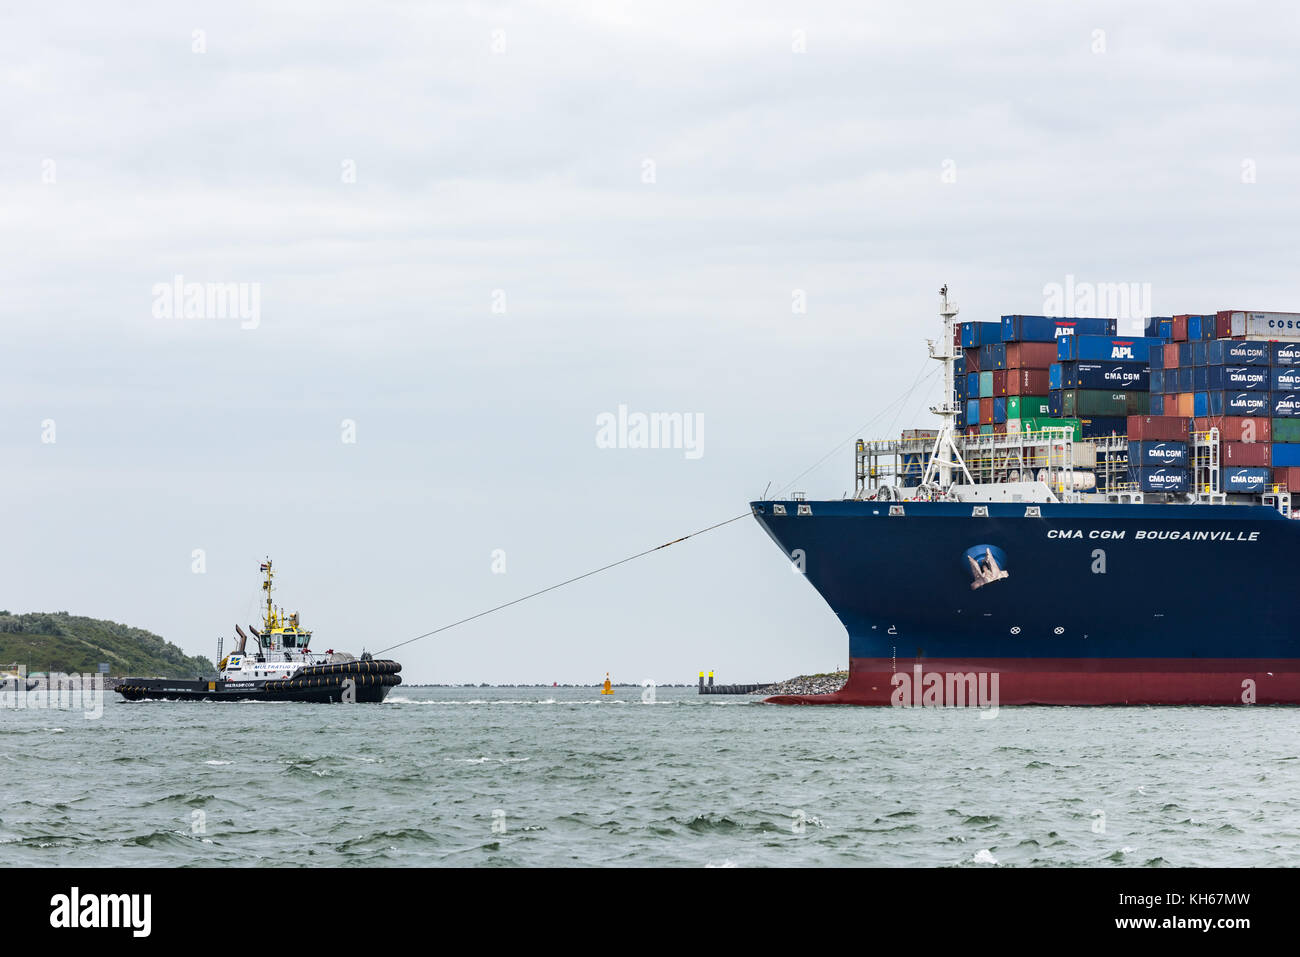 ROTTERDAM, THE NETHERLANDS - JUNE 12, 2017: A tug boat brings the ultra large container ship CMA CGM Bougainville - Stock Image